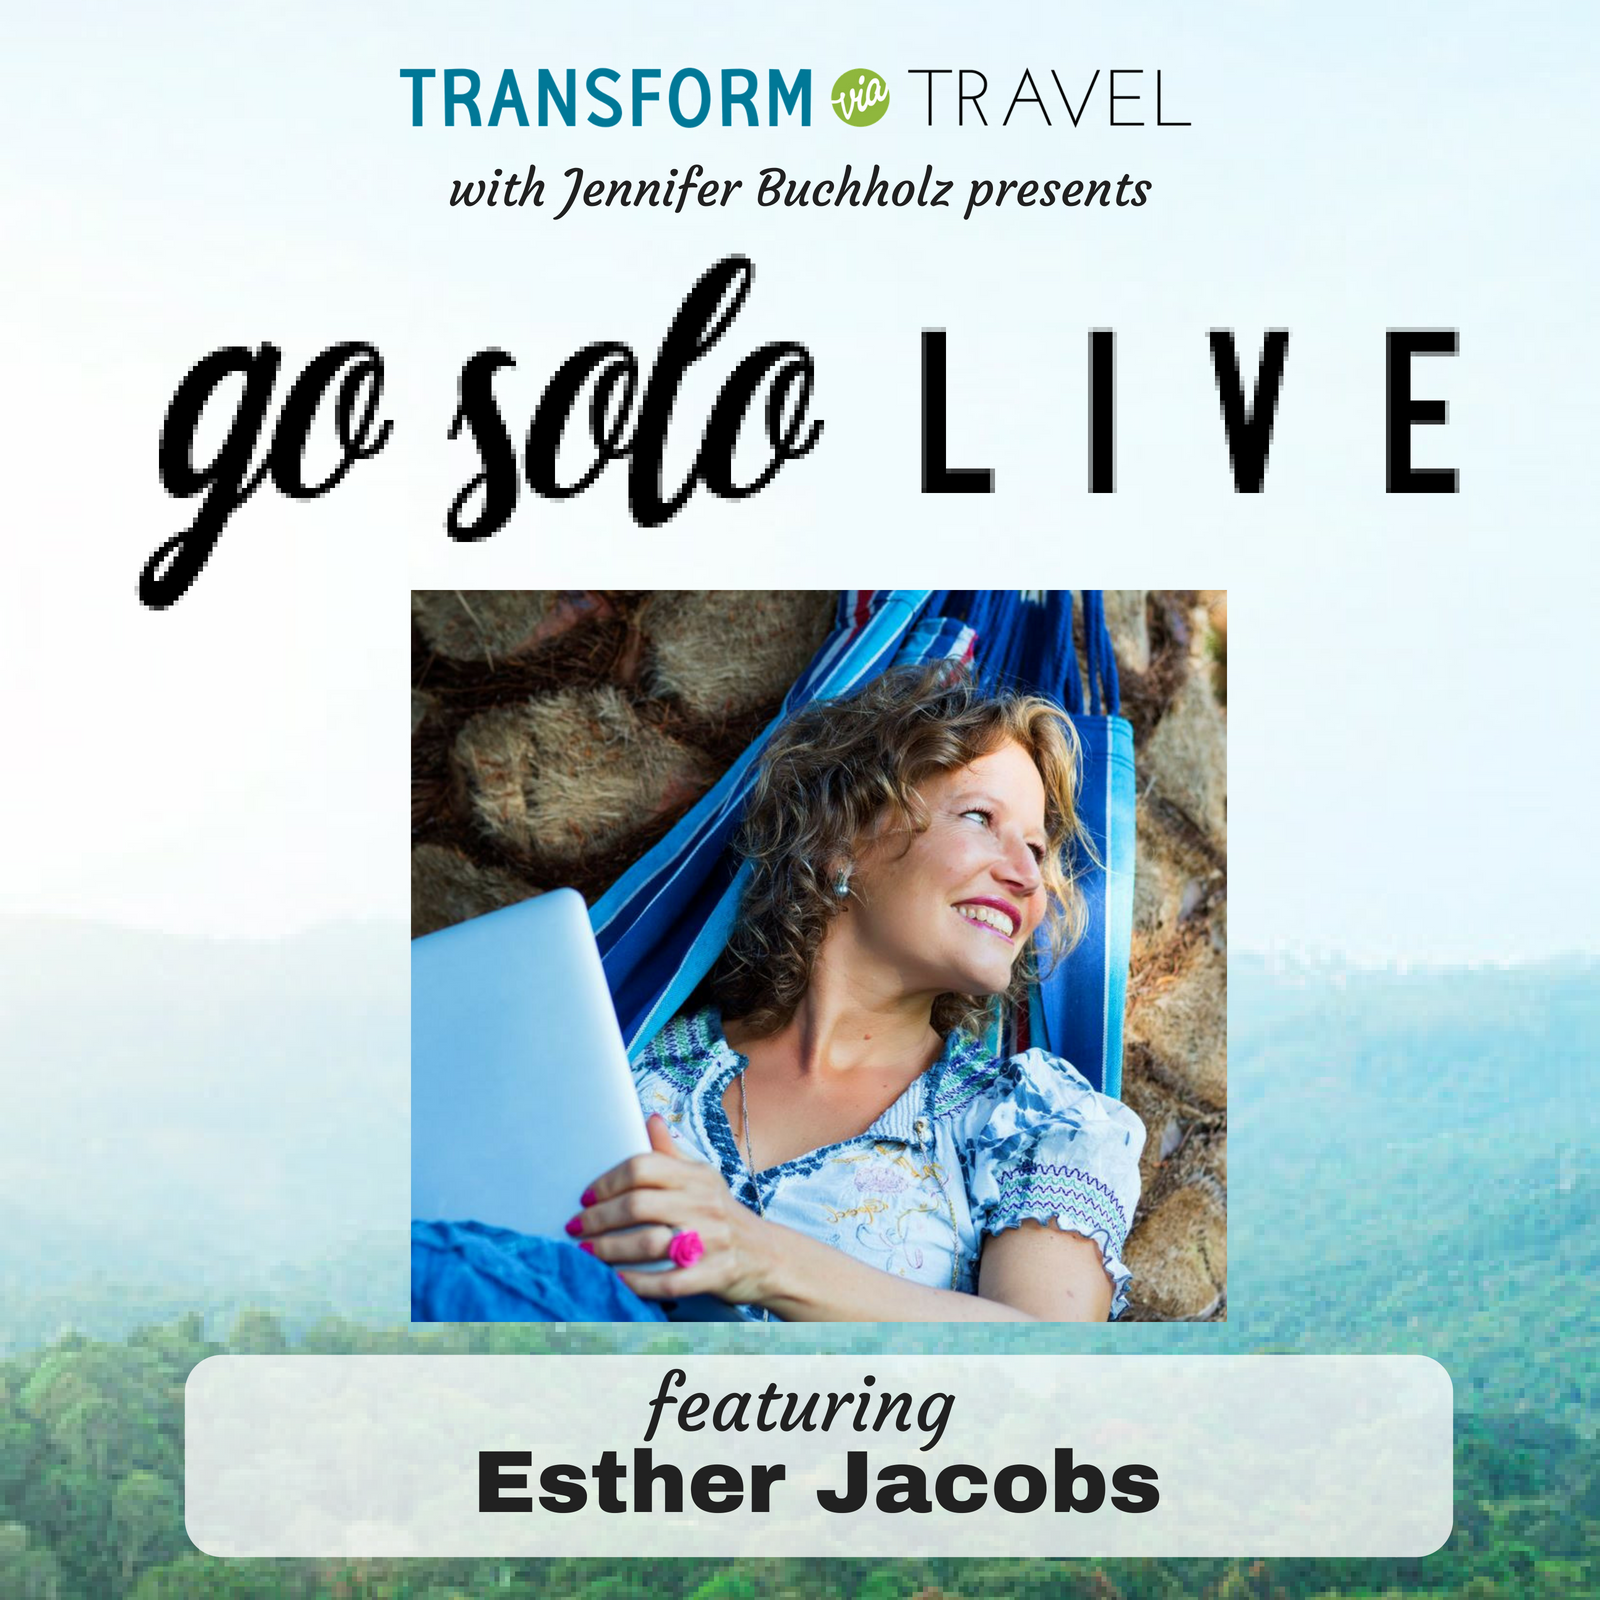 EP 079: Trusting your Intuition for Possibilities in Travel show art